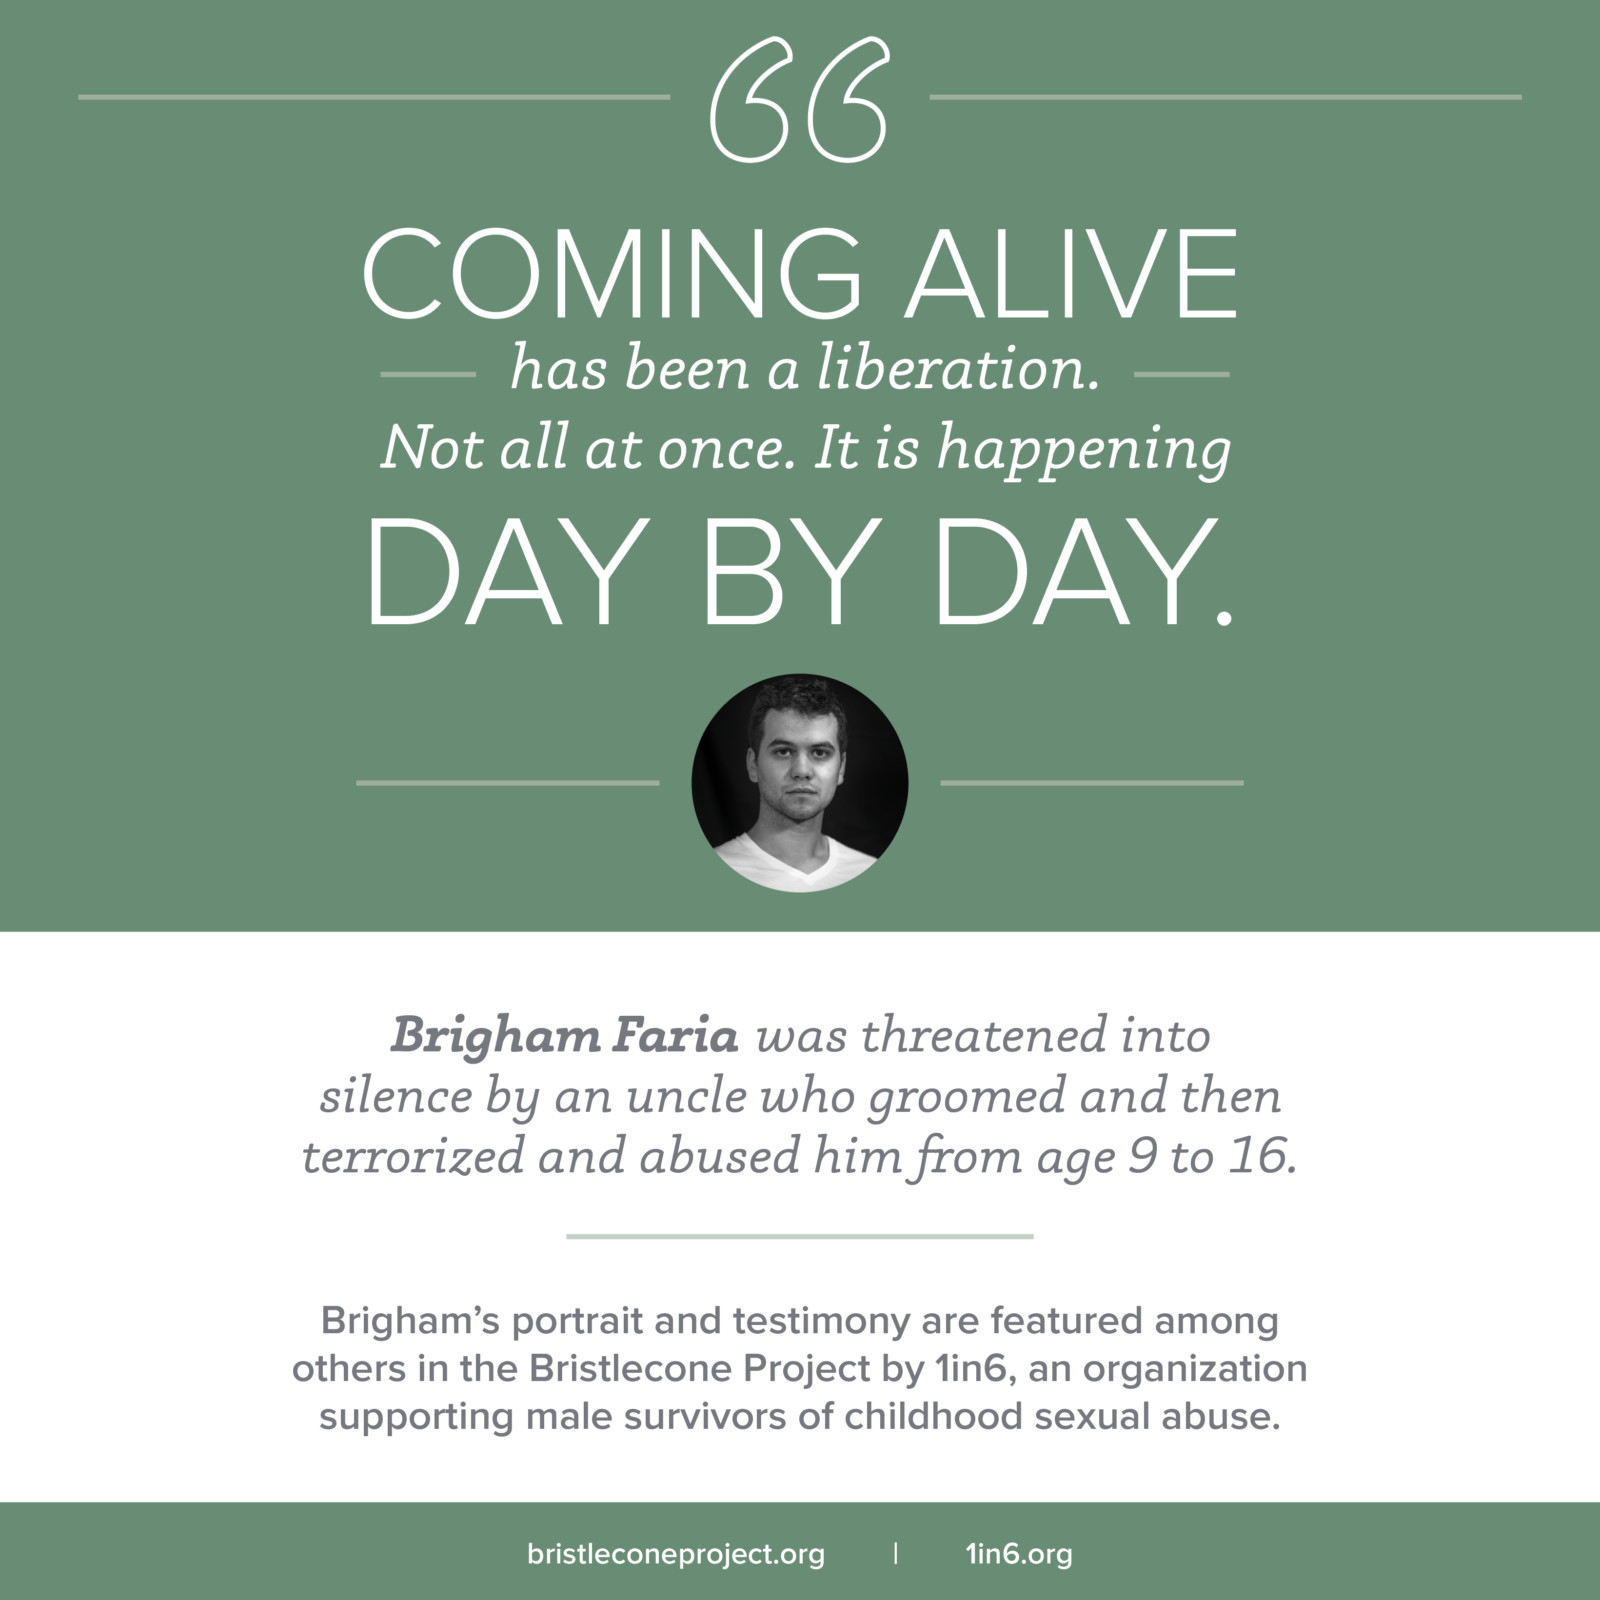 Brigham Faria was threatened into silence by an uncle who groomed and then terrorized and abused him from age 9 to 16. 'Coming alive has been a liberation. Not all at once. It is happening day by day.' Brigham's portrait and testimony are featured among others in the Bristlecone Project by 1in6, an organization supporting male survivors of childhood sexual abuse. bristleconeproject.org 1in6.org